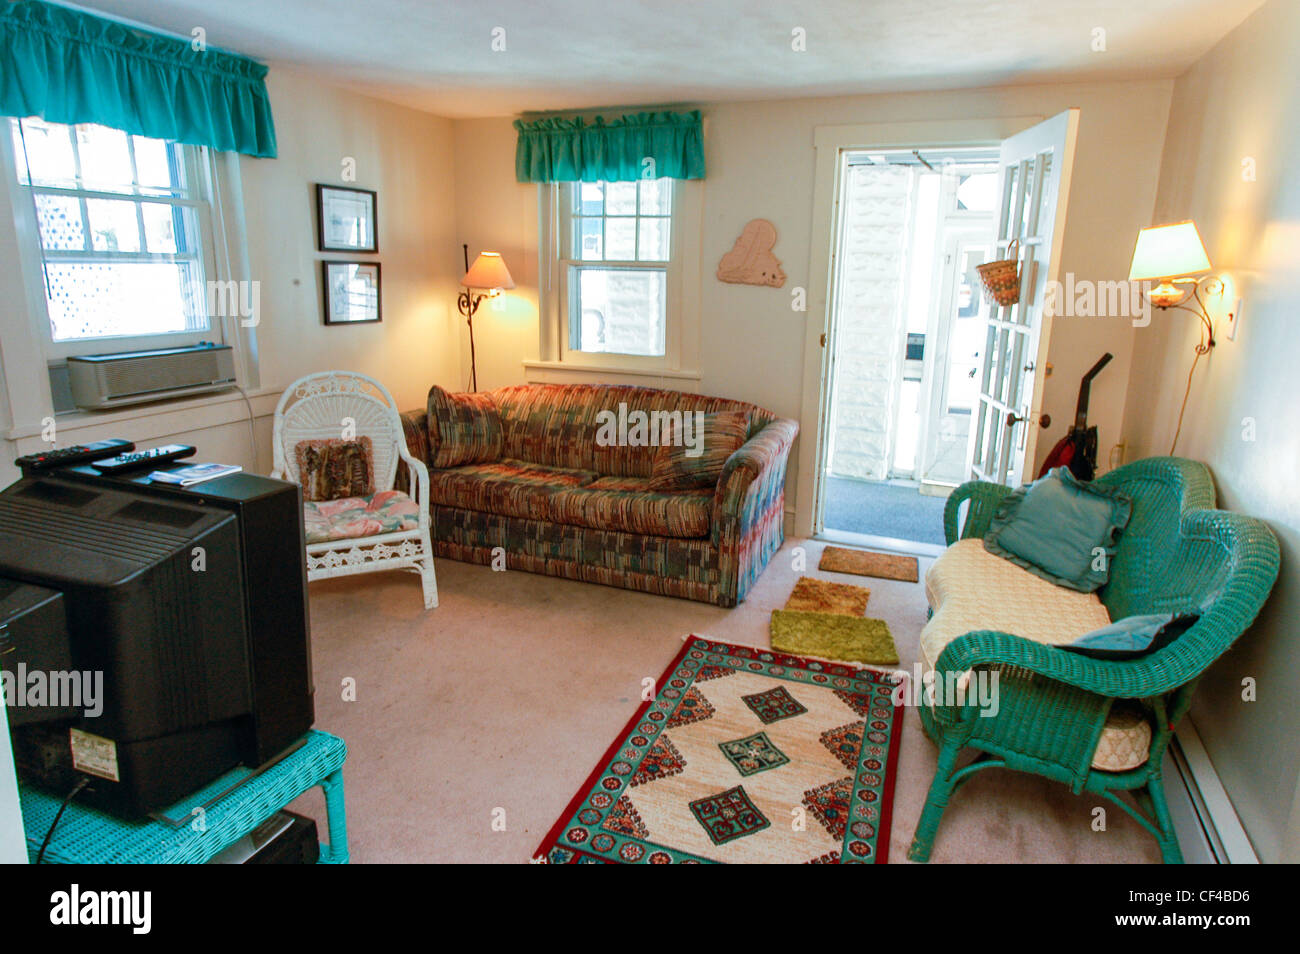 Ocean City, N.J. U.S.A.  Guest House, Holiday Rentals, Inside Living Room,  Open Front Door